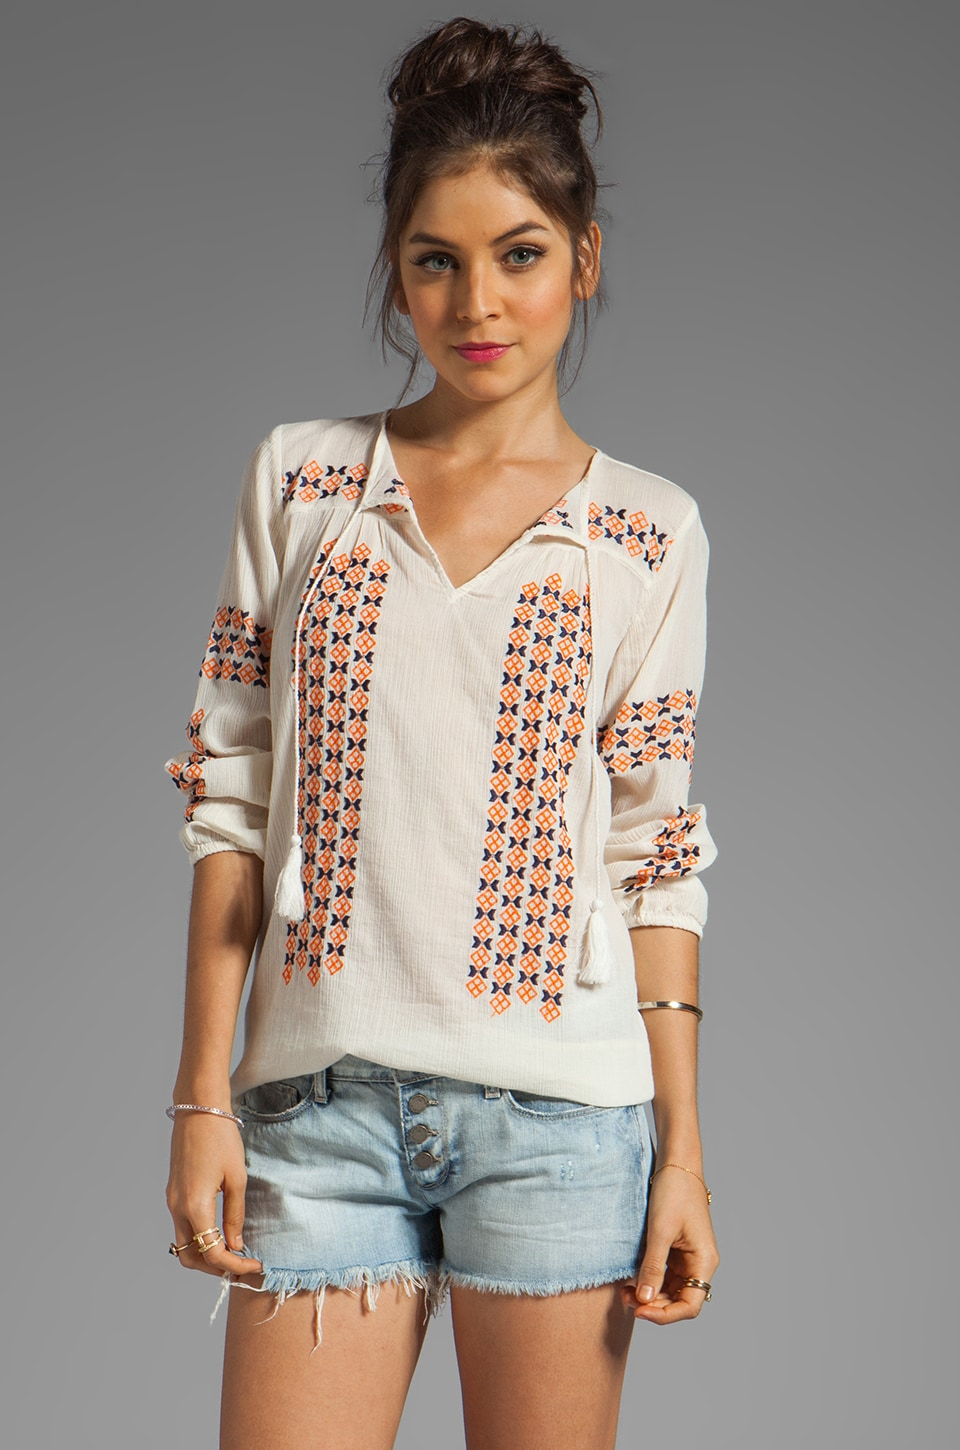 Joie Nira Geo Embroidery Top in Off-White/Spicy Orange